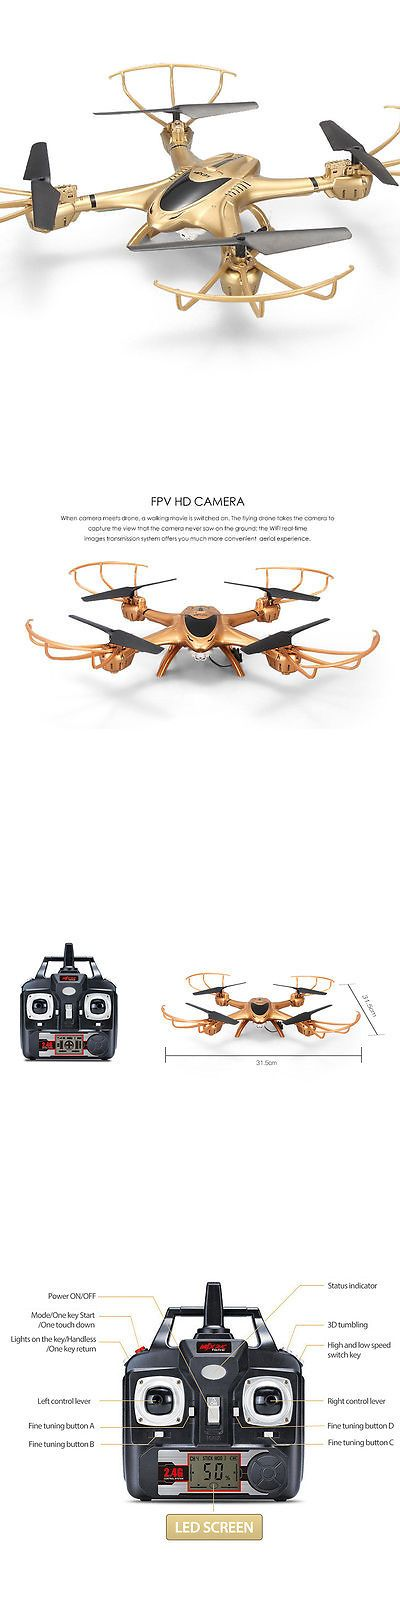 Other RC Model Vehicles and Kits 182186: X401h App Fpv Quadcopter Rc Drones 0.3Mp 2.4G Rtf Headless W Hd Camera 3D Roll -> BUY IT NOW ONLY: $59.99 on eBay!